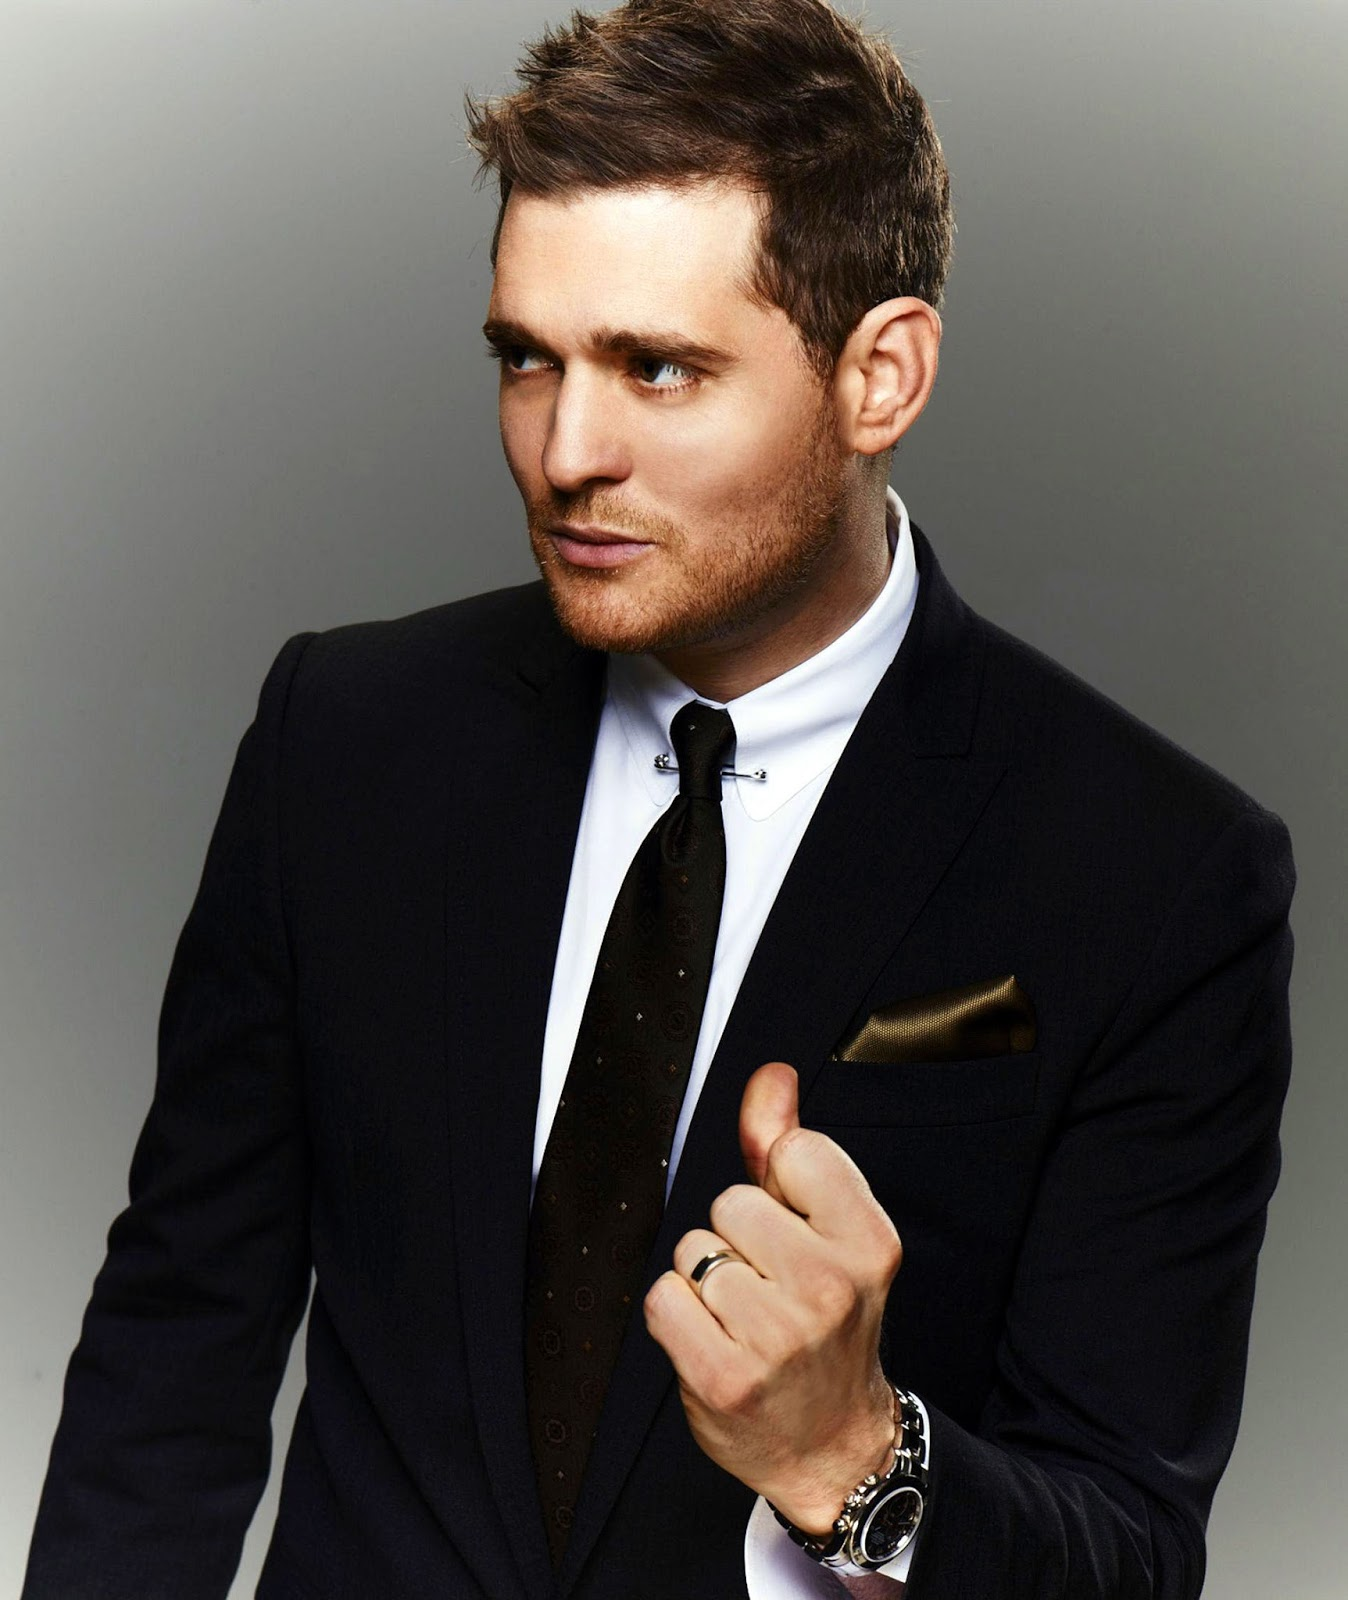 Michael Bublé Michael Bublé: Welcome To RolexMagazine.com...Home Of Jake's Rolex World